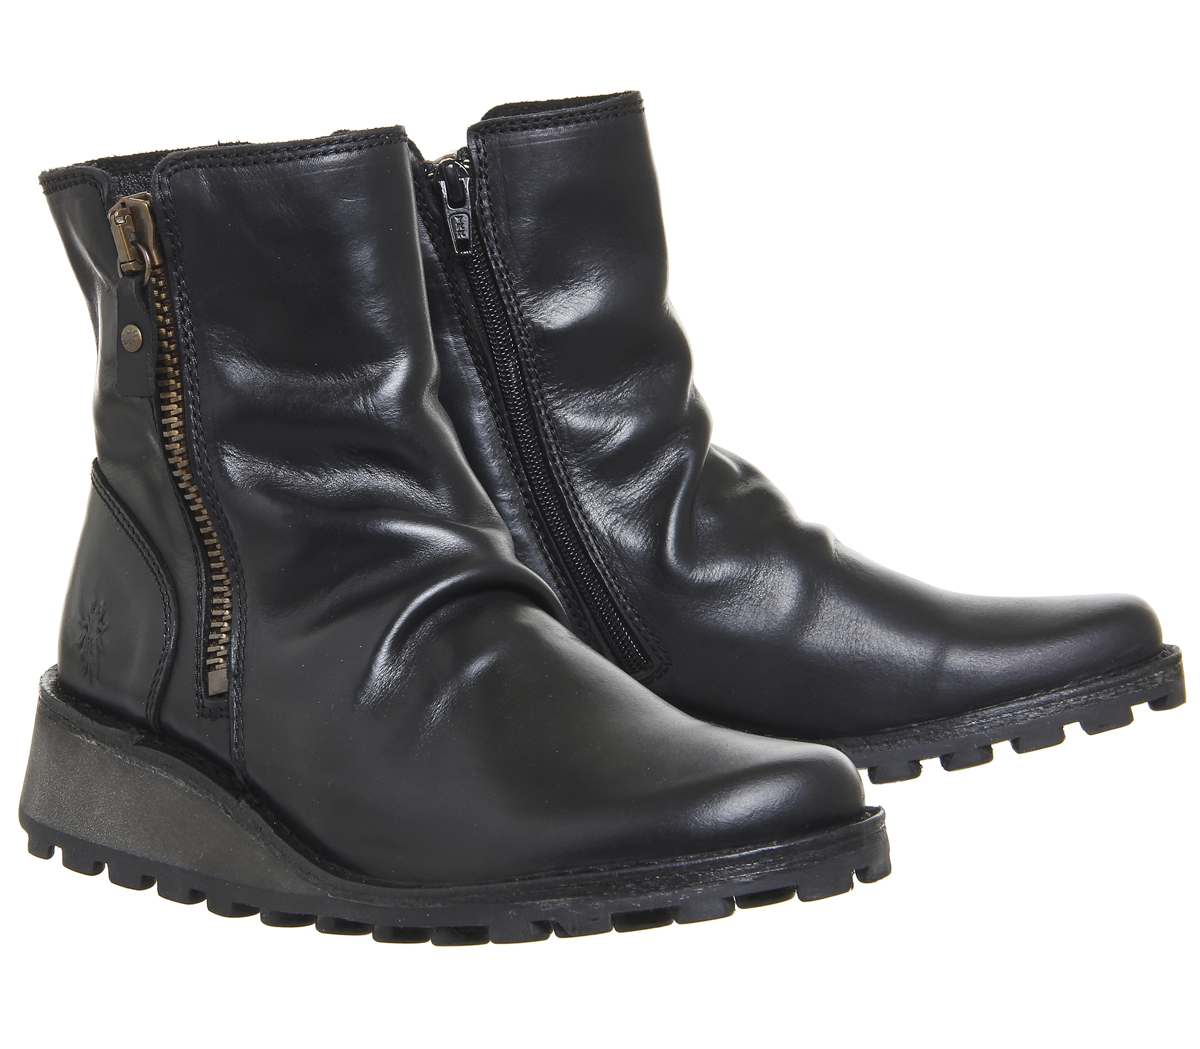 Womens-Fly-London-Mon-Zip-Boots-Black-Rug-Boots